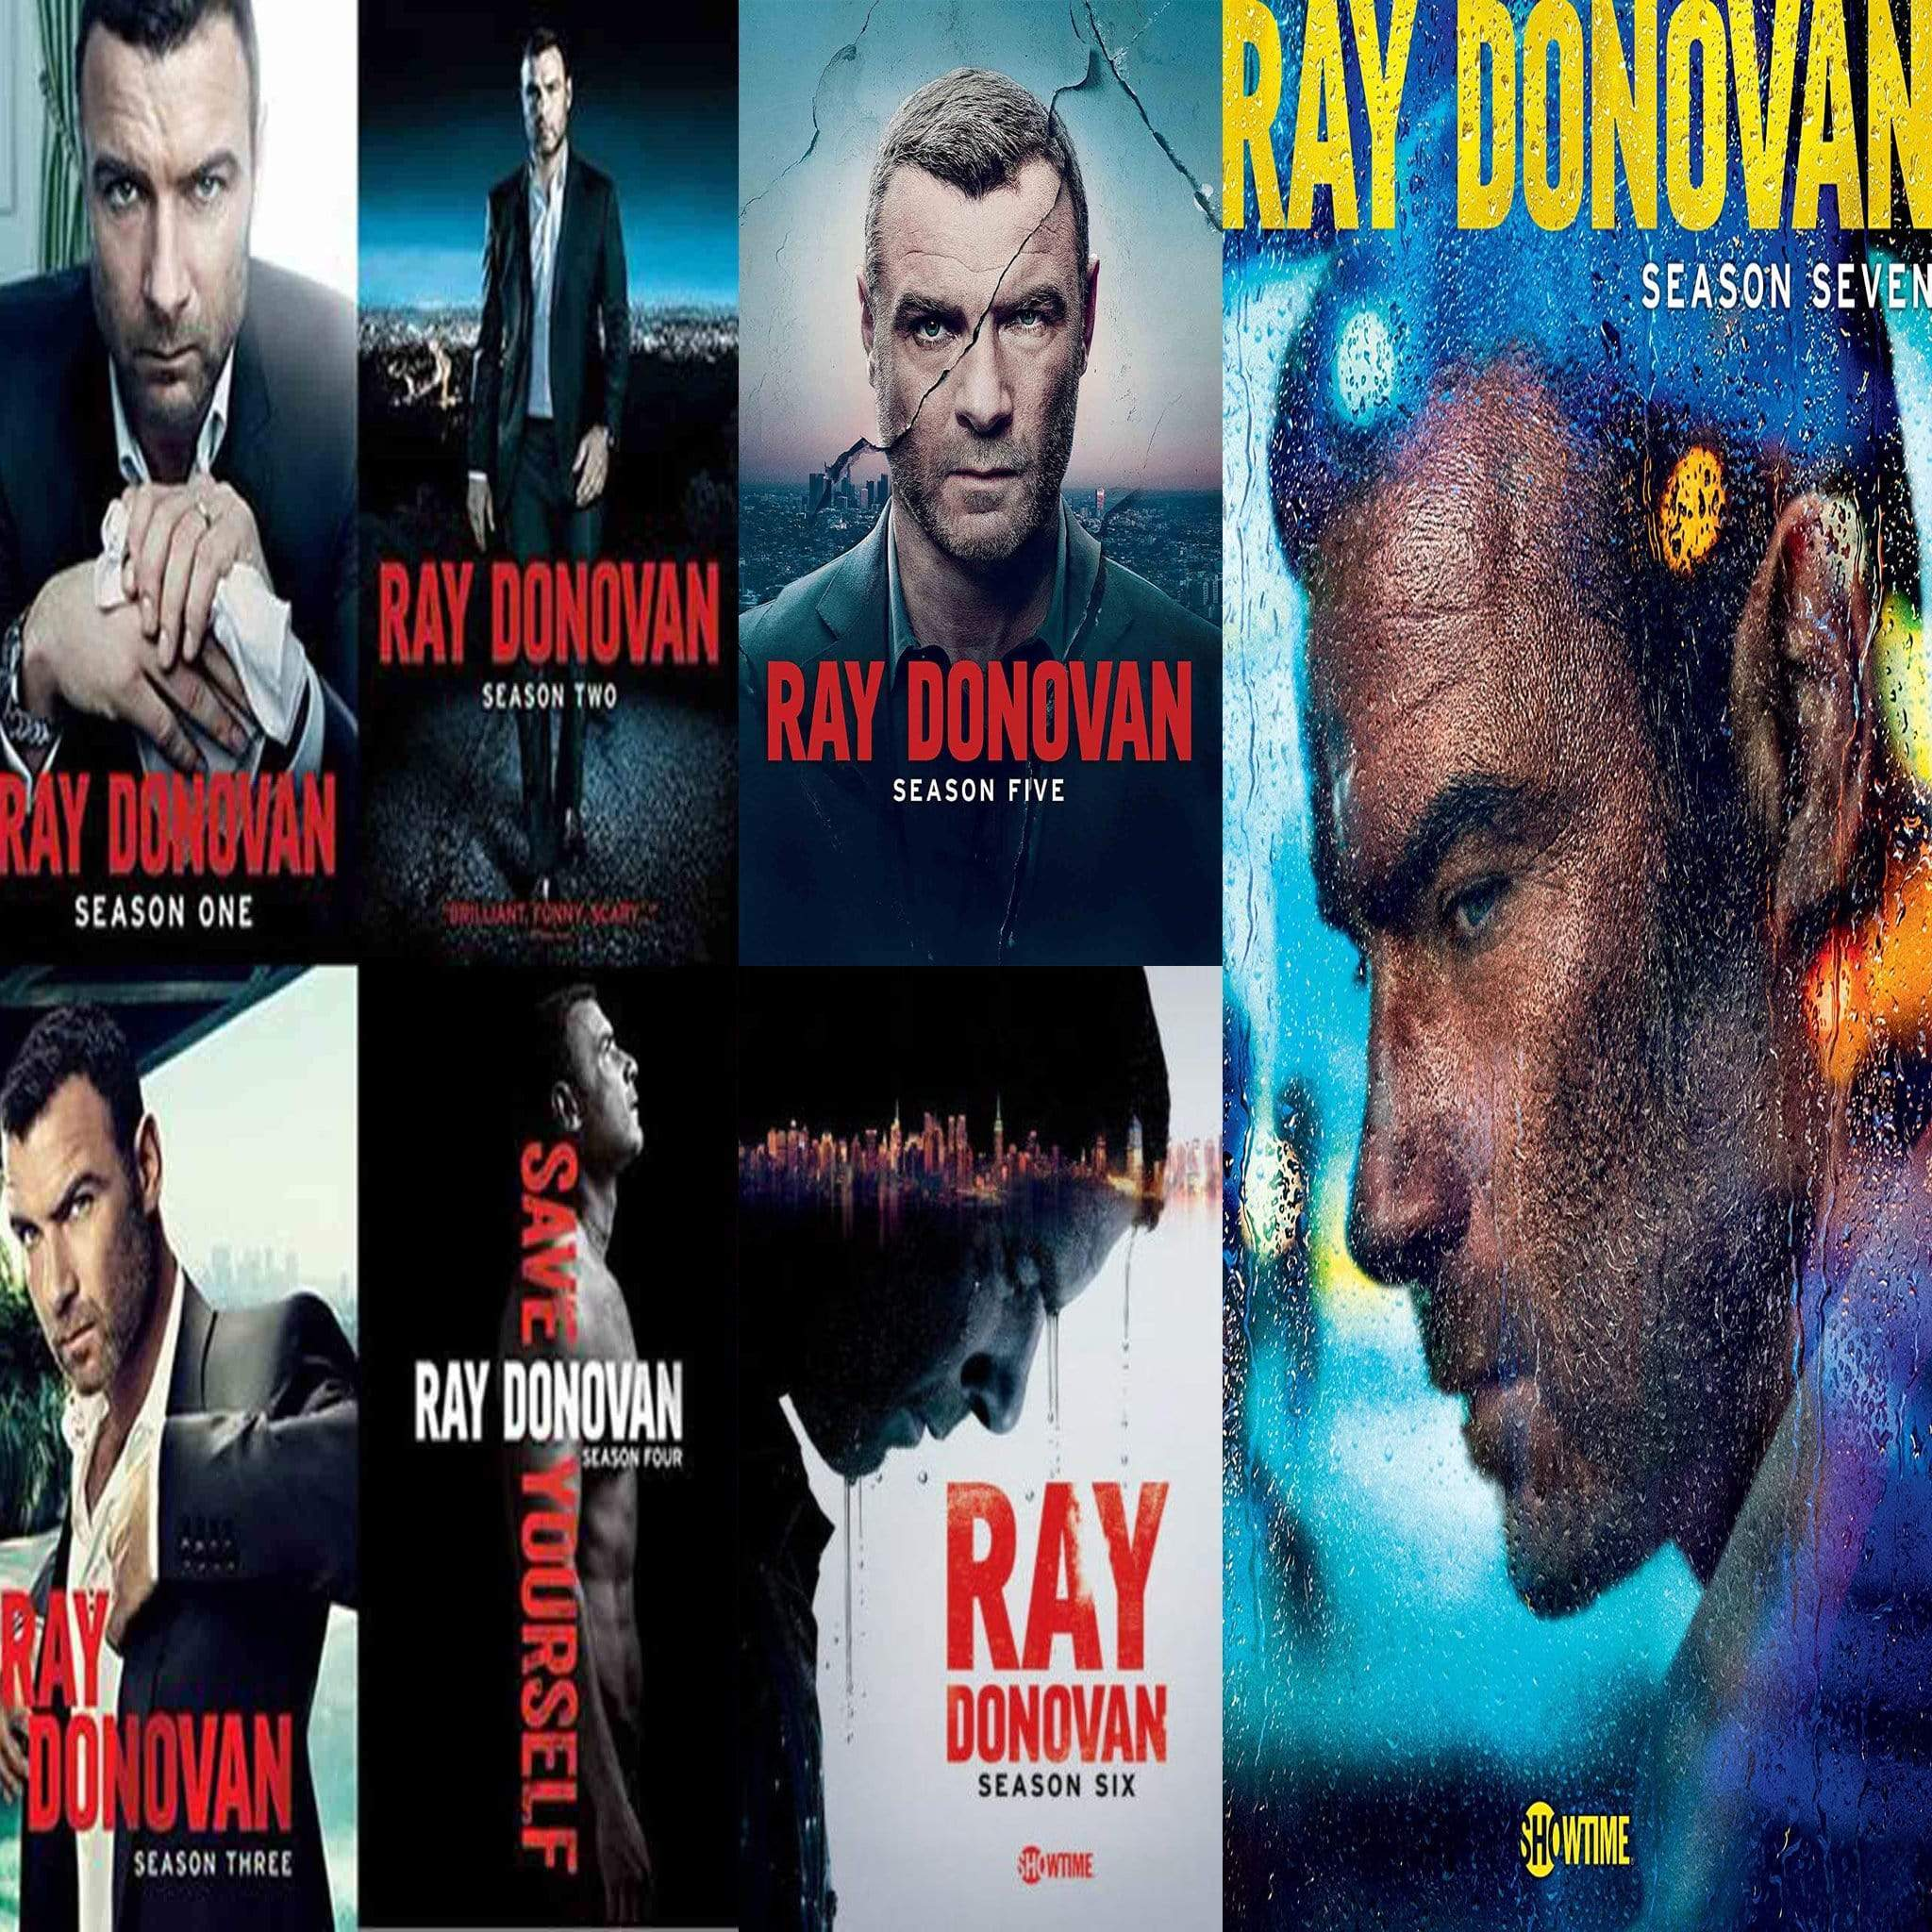 Ray Donovan TV Series Seasons 1-7 DVD Set Paramount Home Entertainment DVDs & Blu-ray Discs > DVDs